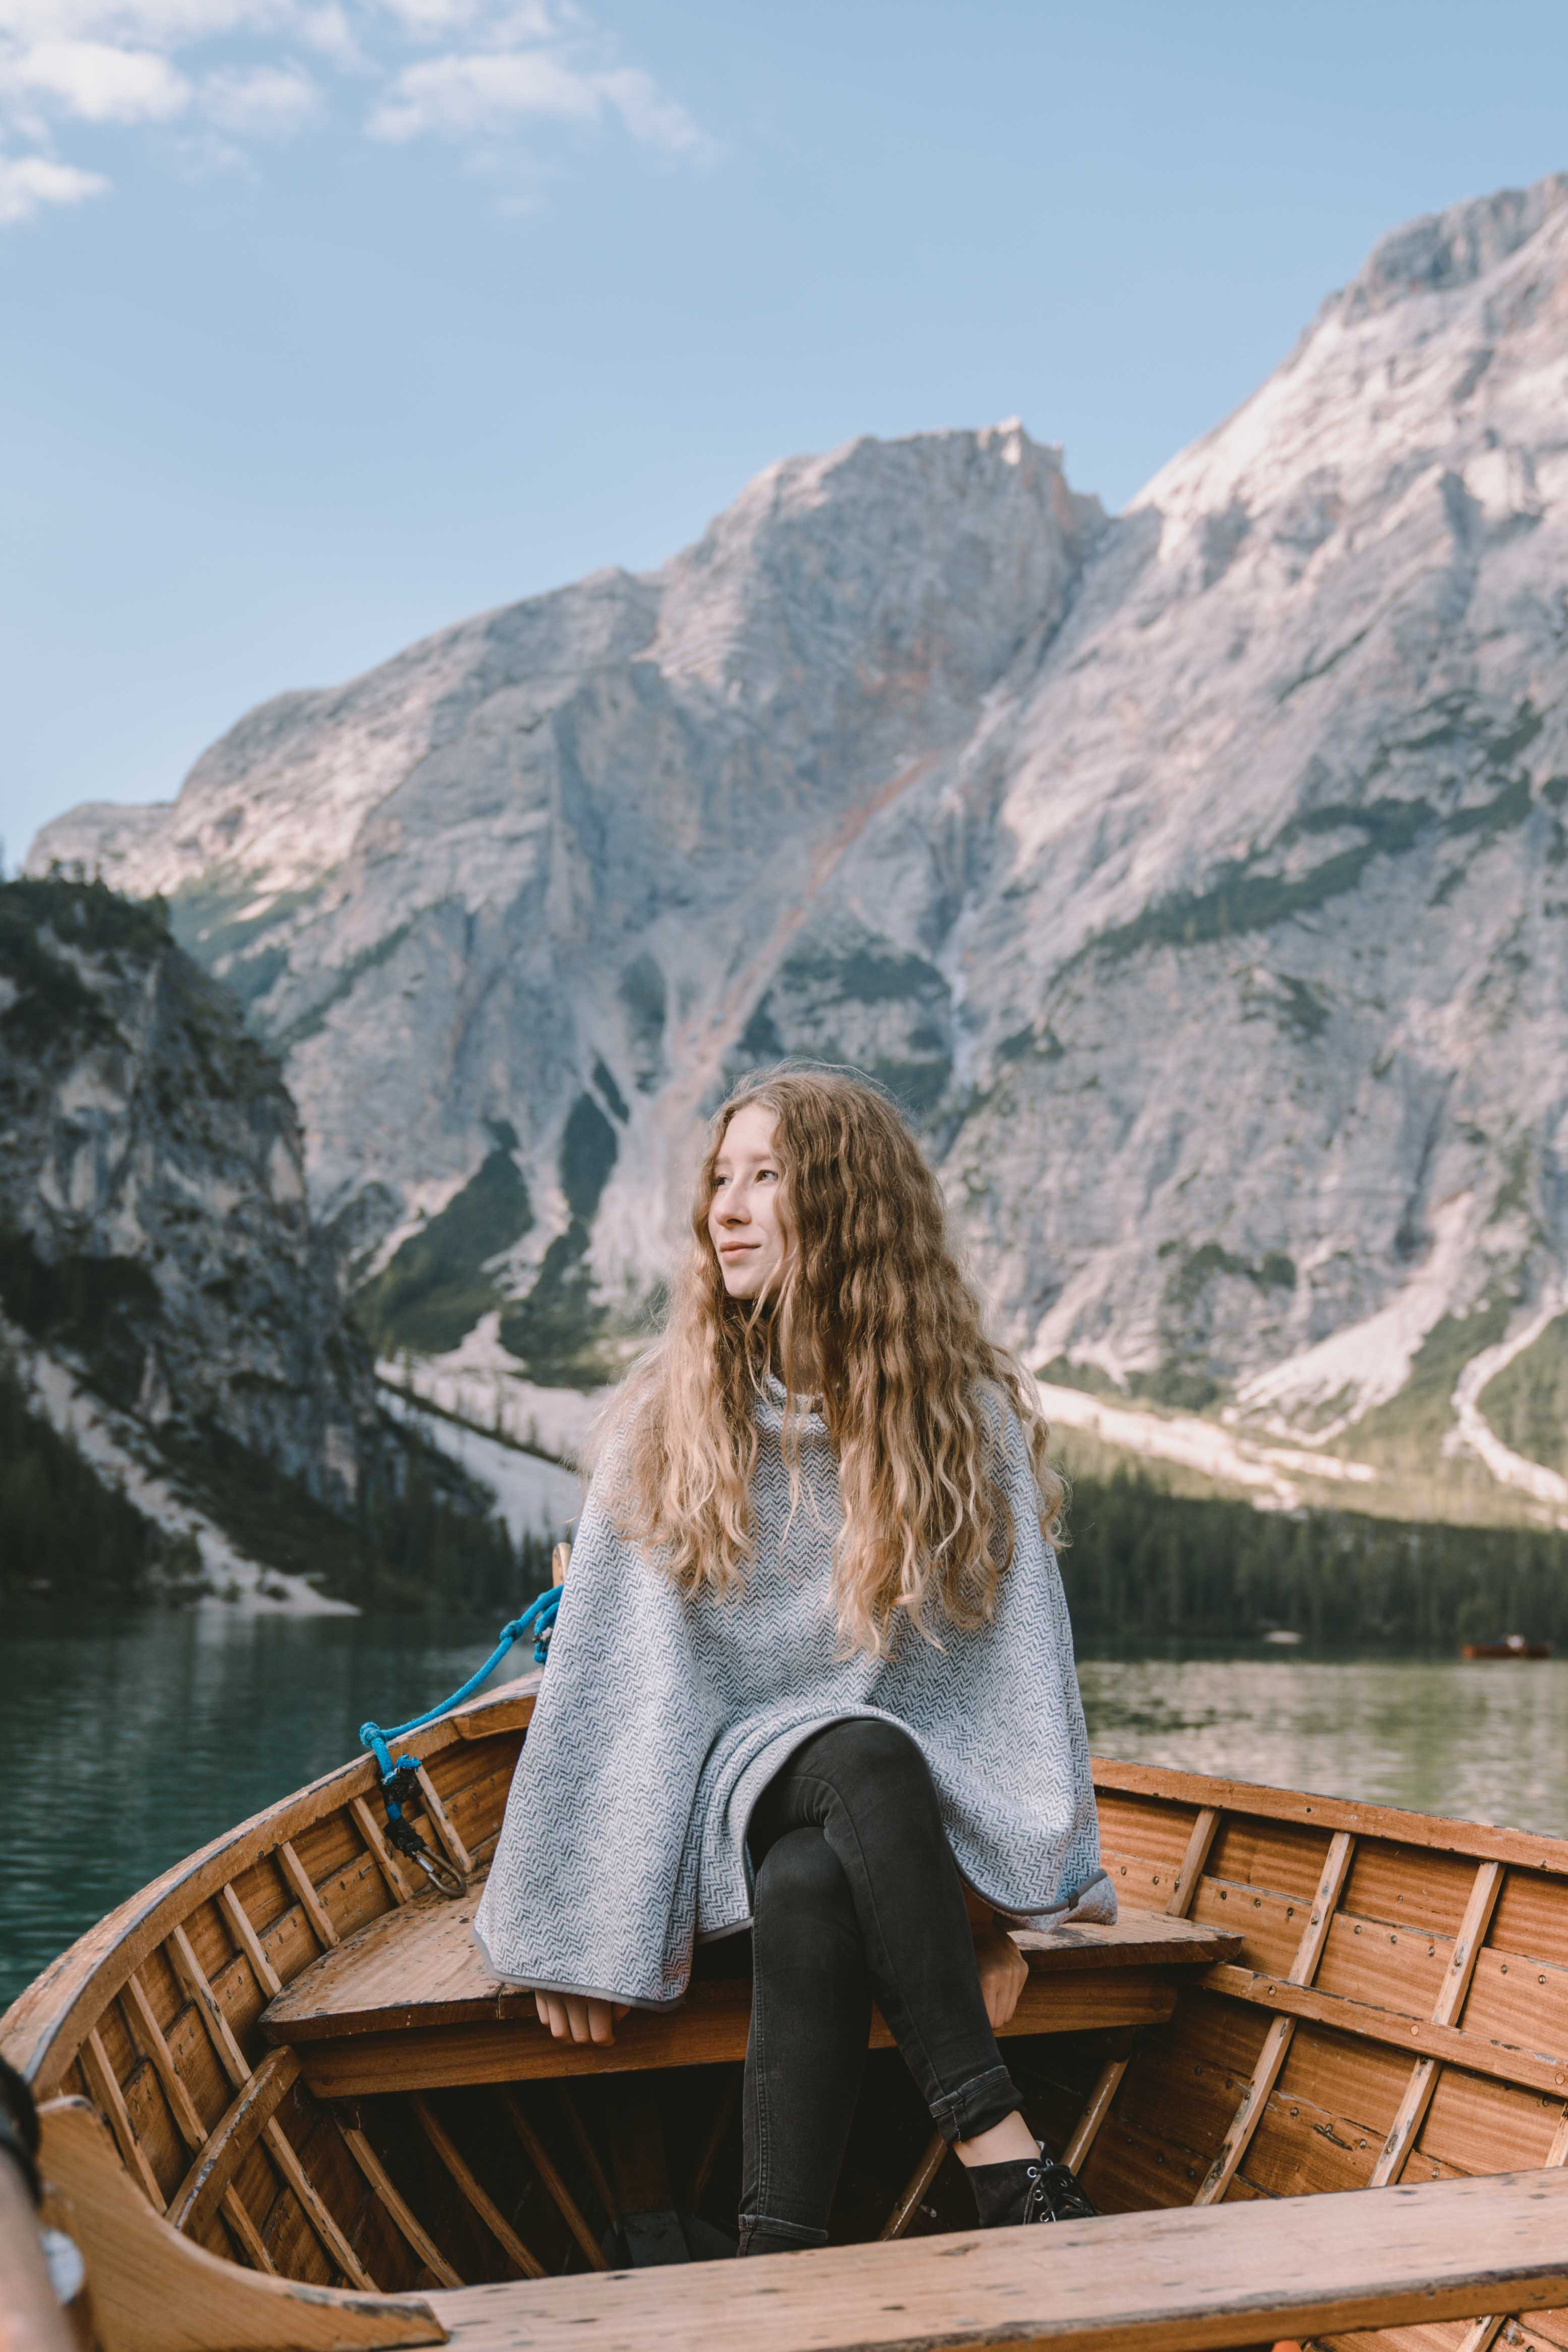 Women wearing a grey poncho by Elkline sitting in a boat on a mountain lake in Italy